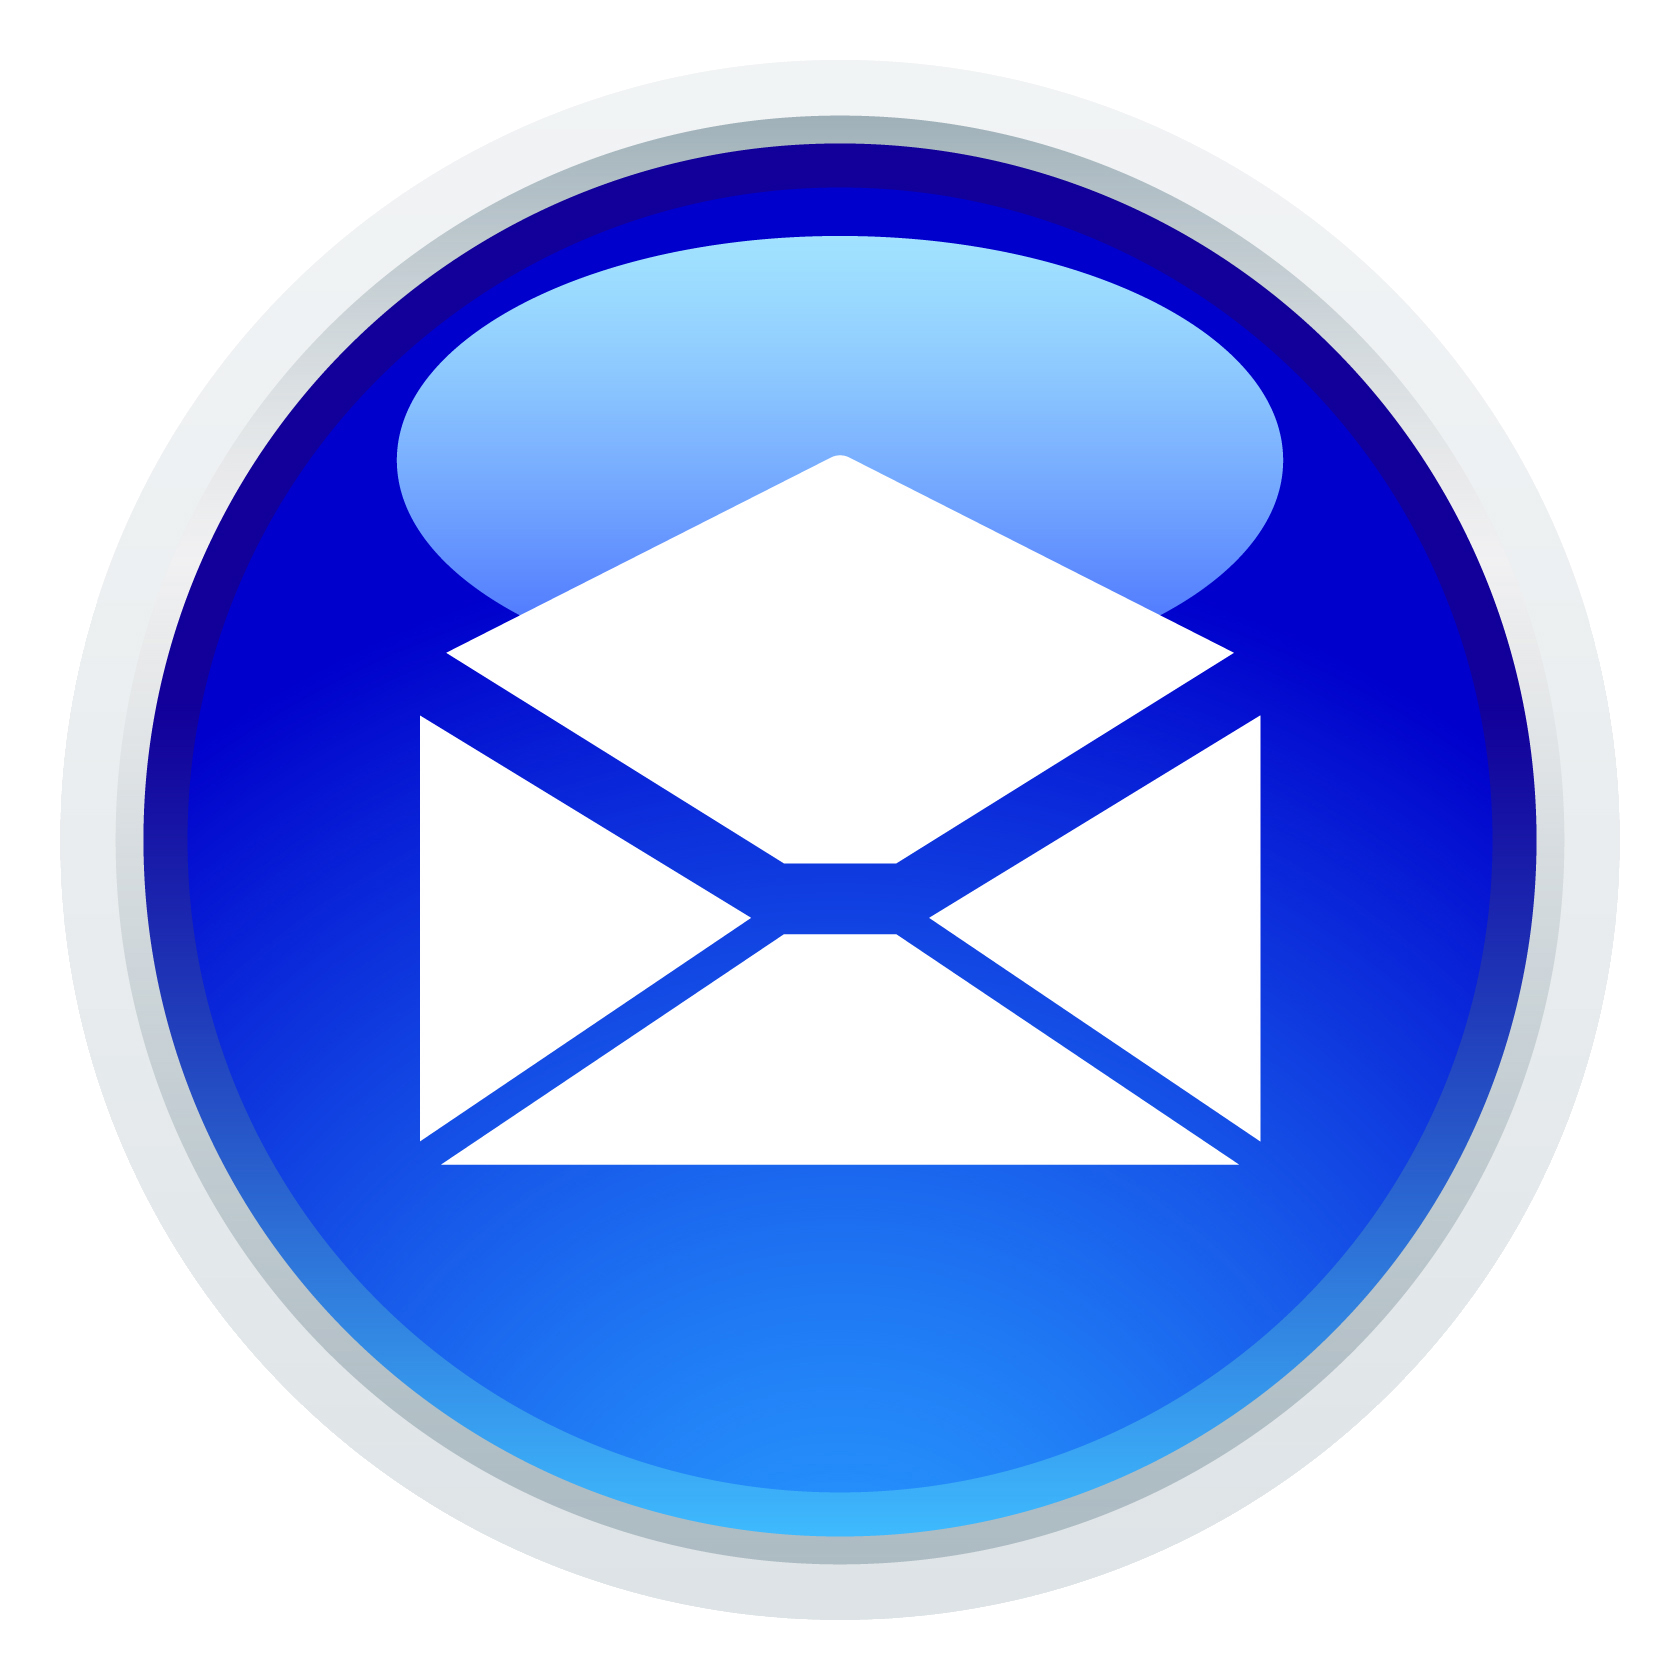 email logo png 1128